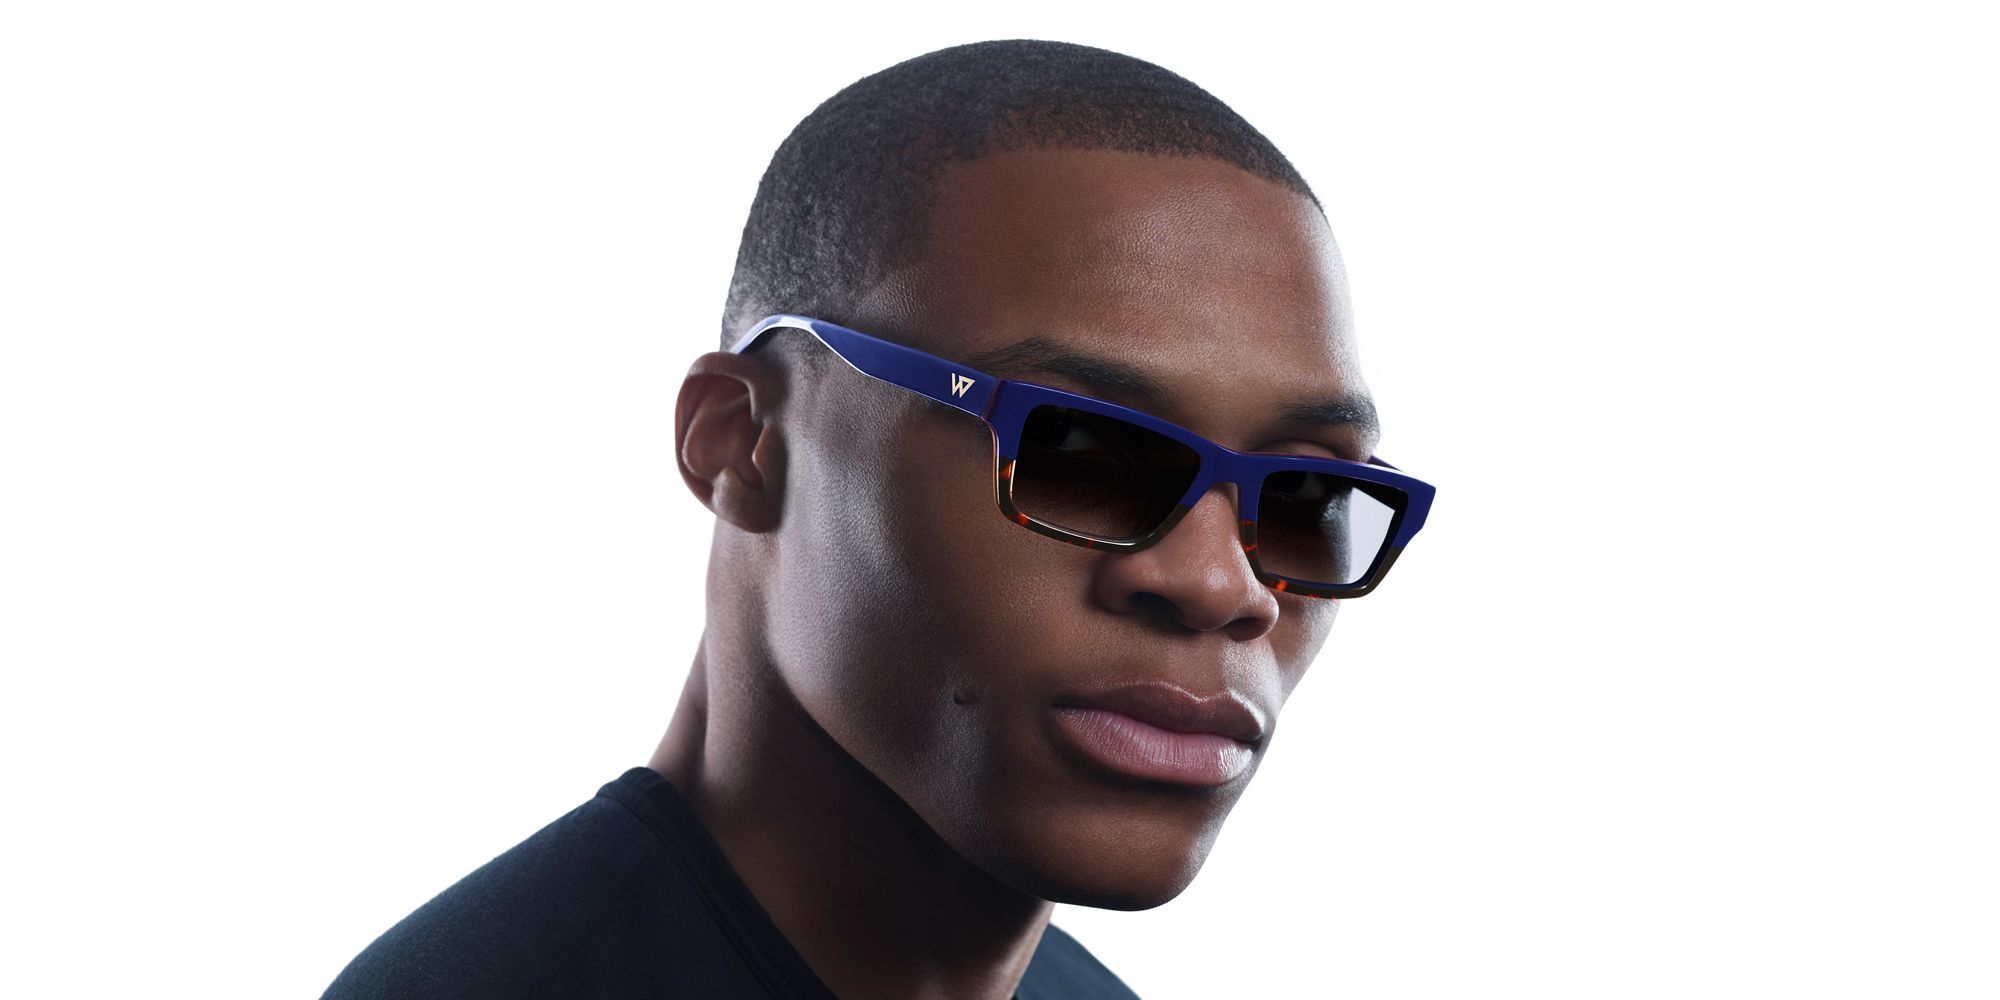 Inspires Designs Westbrook Glasses Russell His Tells Us What SVUzMpq